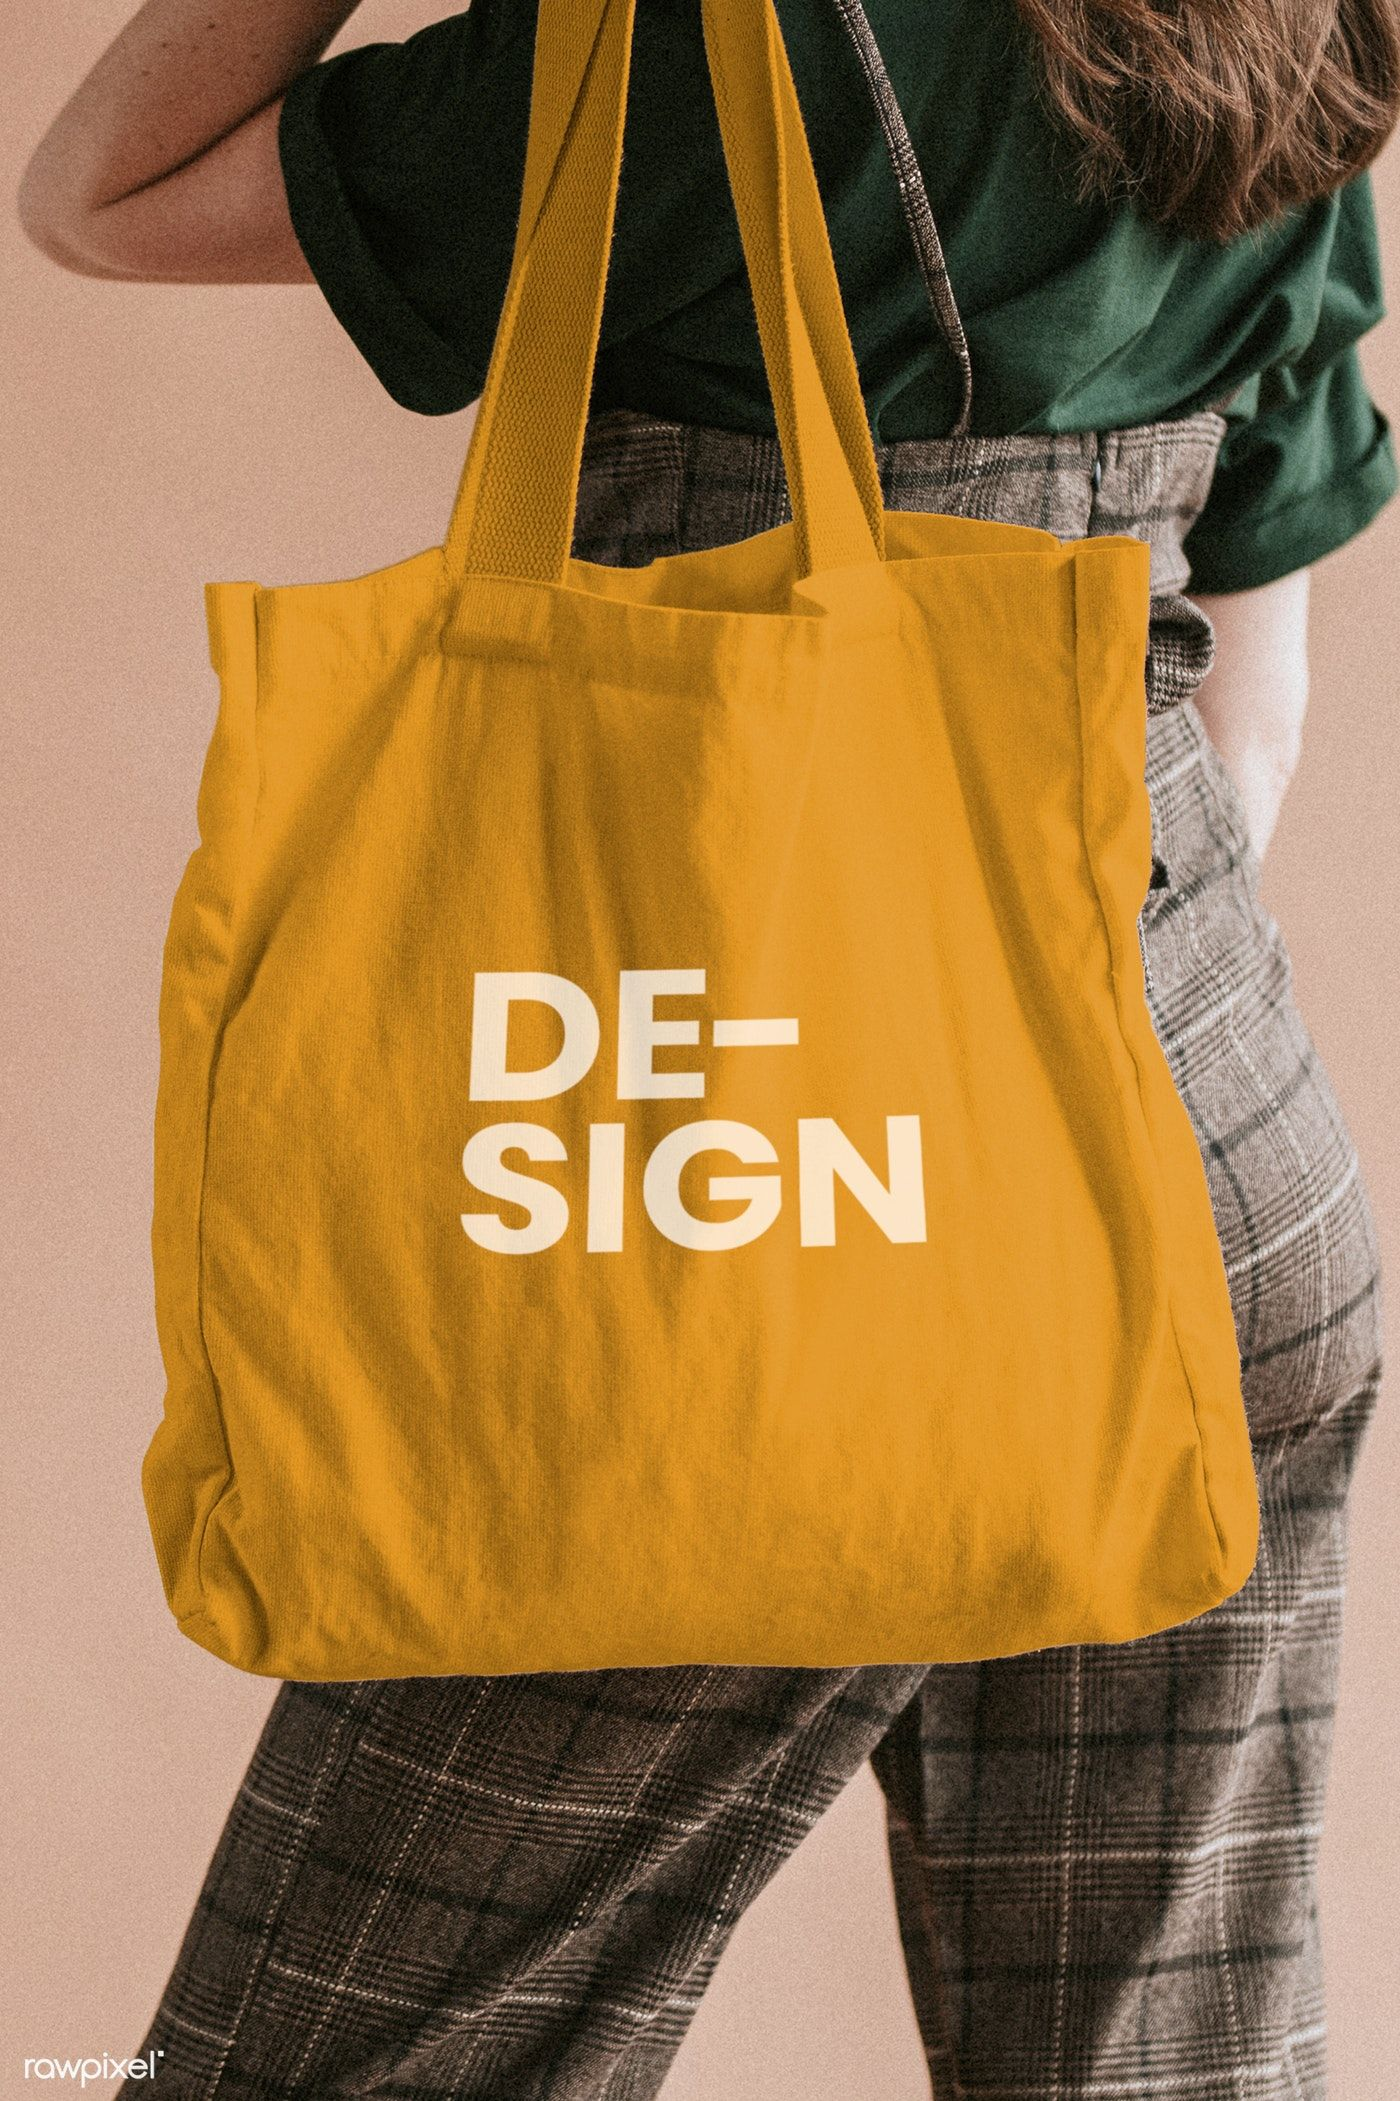 Basically these mockups are true manifestations of how shopping bags should look like. 771 Gym Bag Mockup Free Download Best Quality Mockups Psd